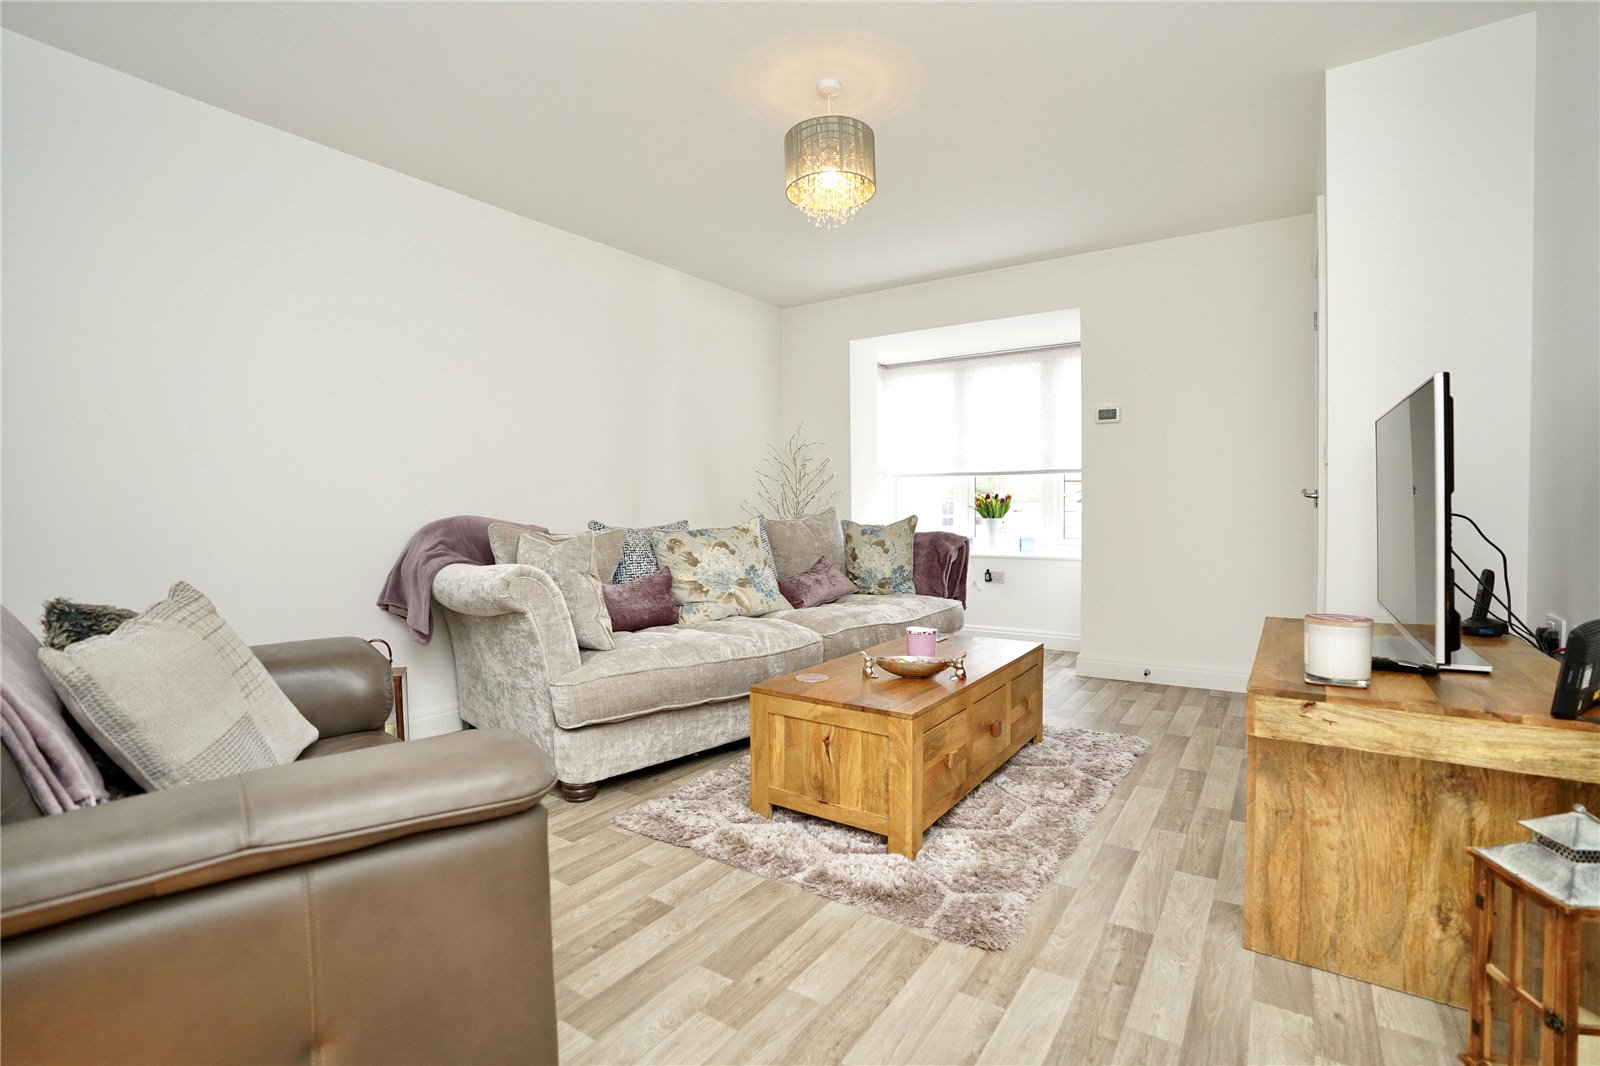 3 bed house for sale in Sawtry, PE28 5ZJ 2